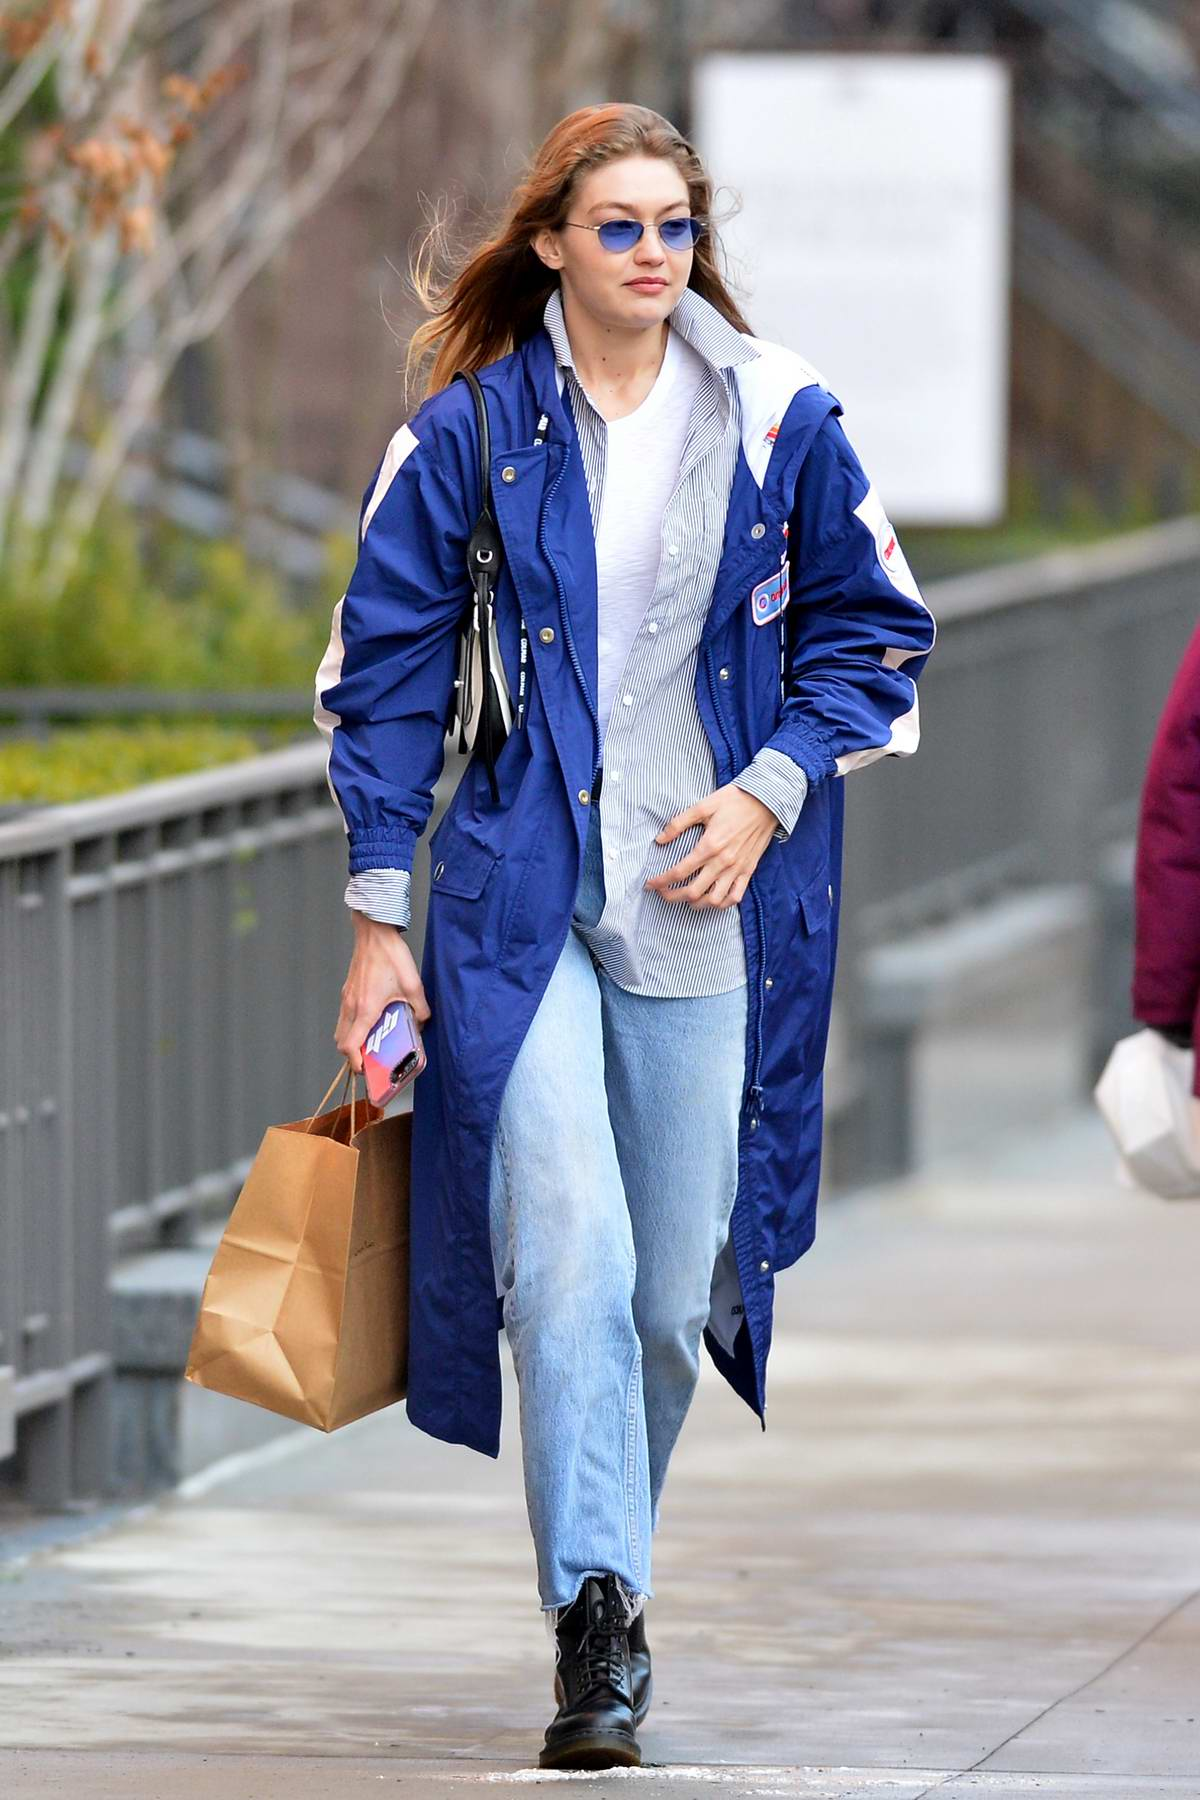 Gigi Hadid looks trendy in a long blue jacket with matching blue shades while out in New York City